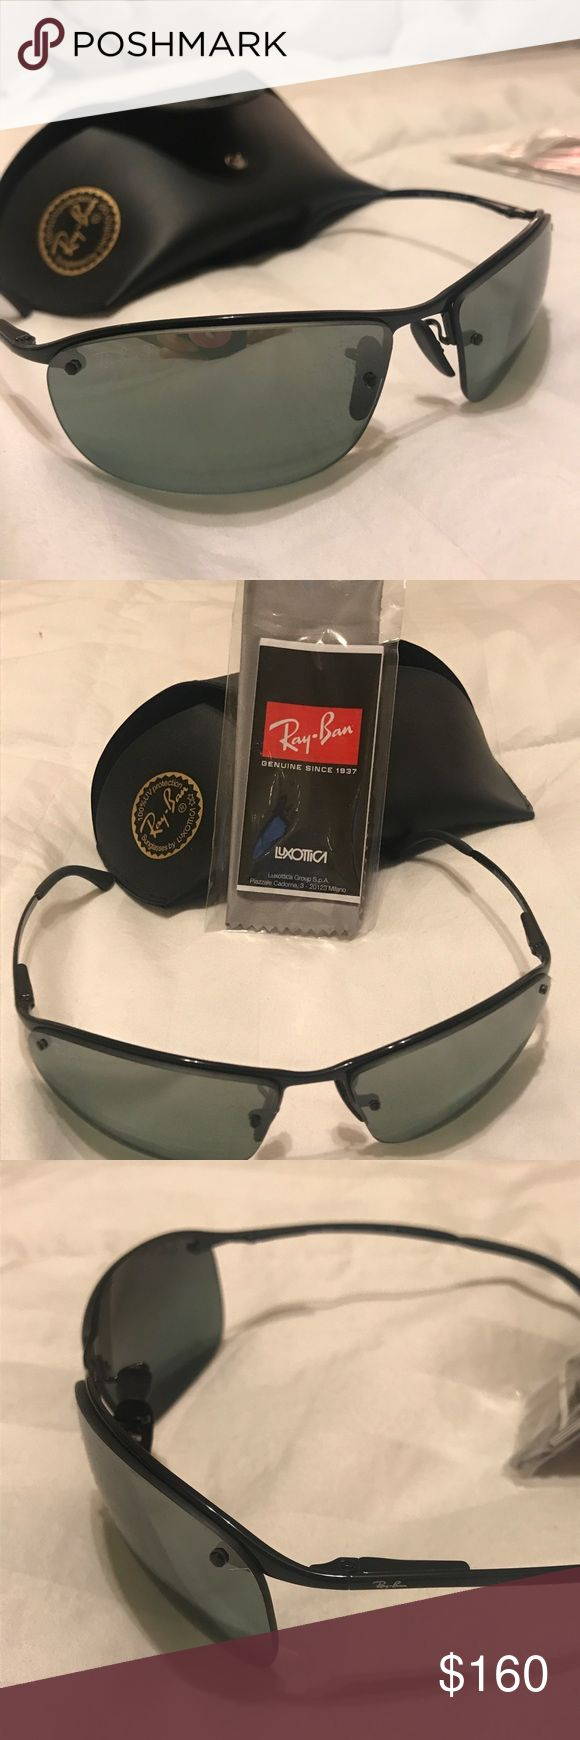 Mens Ray Ban sunglasses NWOT Never got used or worn! In wonderful condition. Model code: RB3542 002/5L 63-15. Has the brand newest type of lenses by Ray-Ban called Chromance. Has Polarized lenses. The person you received them as a gift didn't want another pair of sunglasses.  Price listed on Ray-Ban website is $193  Offers are welcomed through the offer button ONLY...please 💚 Ray-Ban Accessories Sunglasses